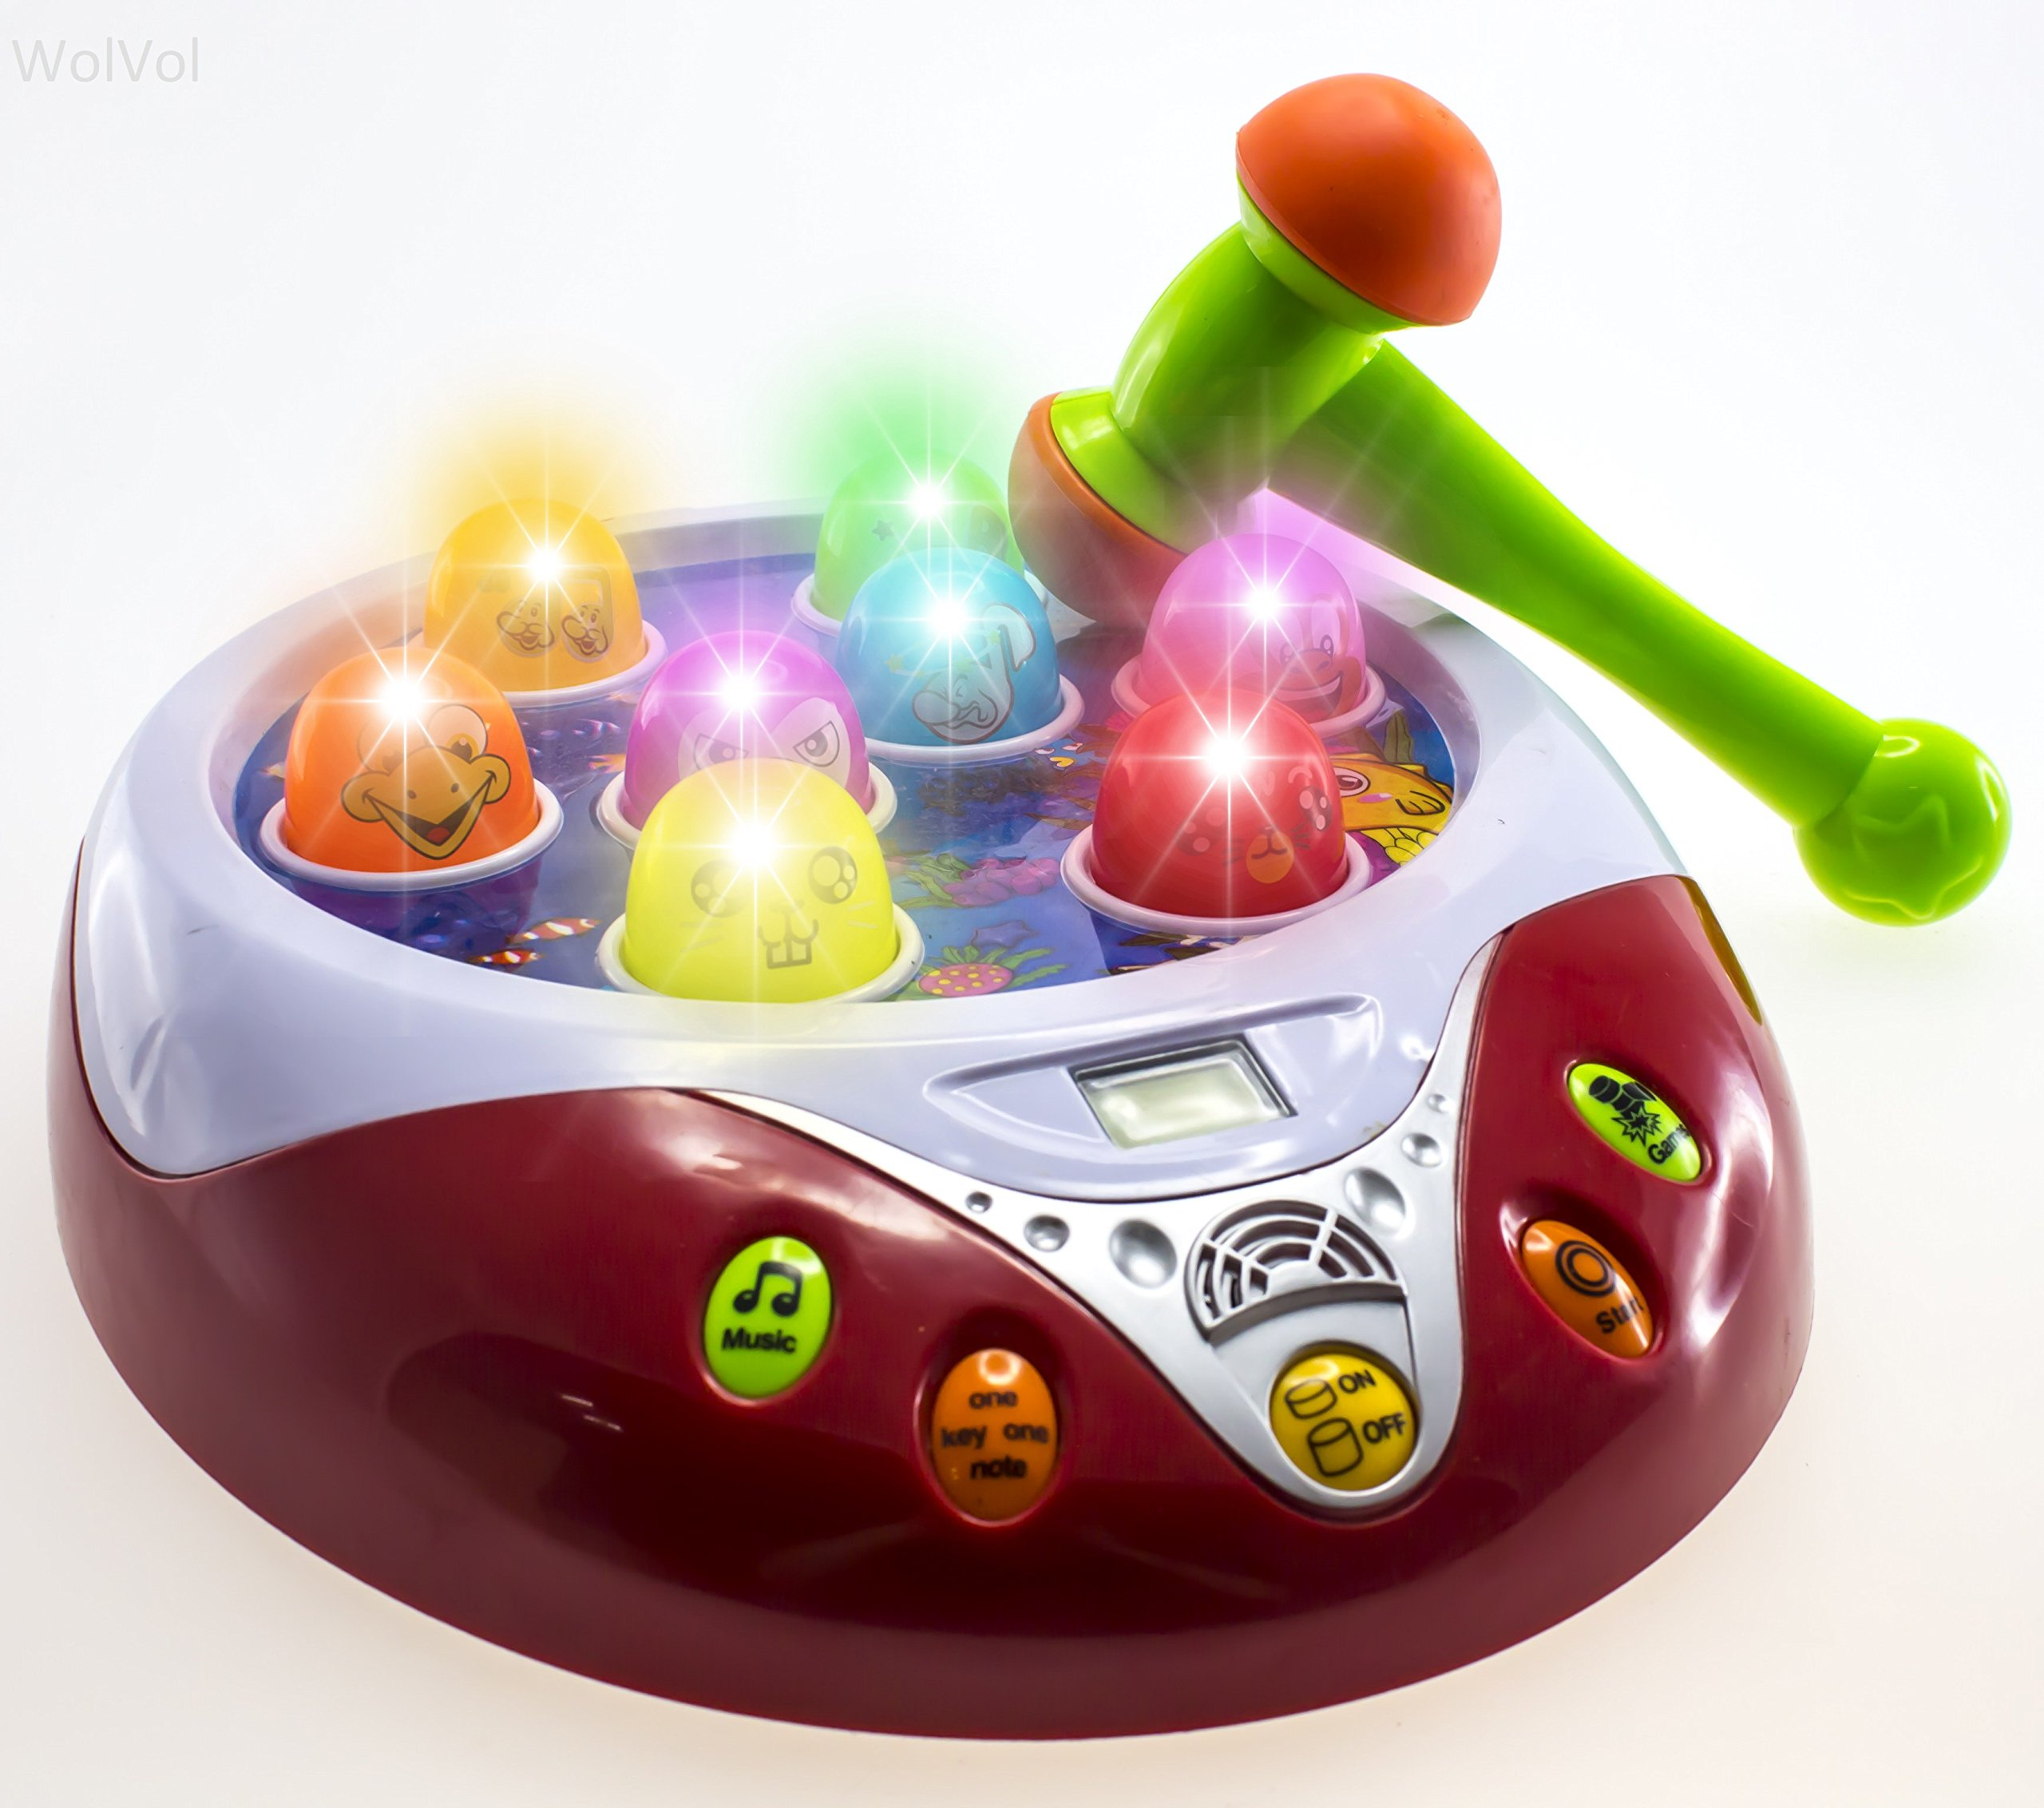 Hammer Game Toy : Wolvol musical fun hammer pounding toy game with lights